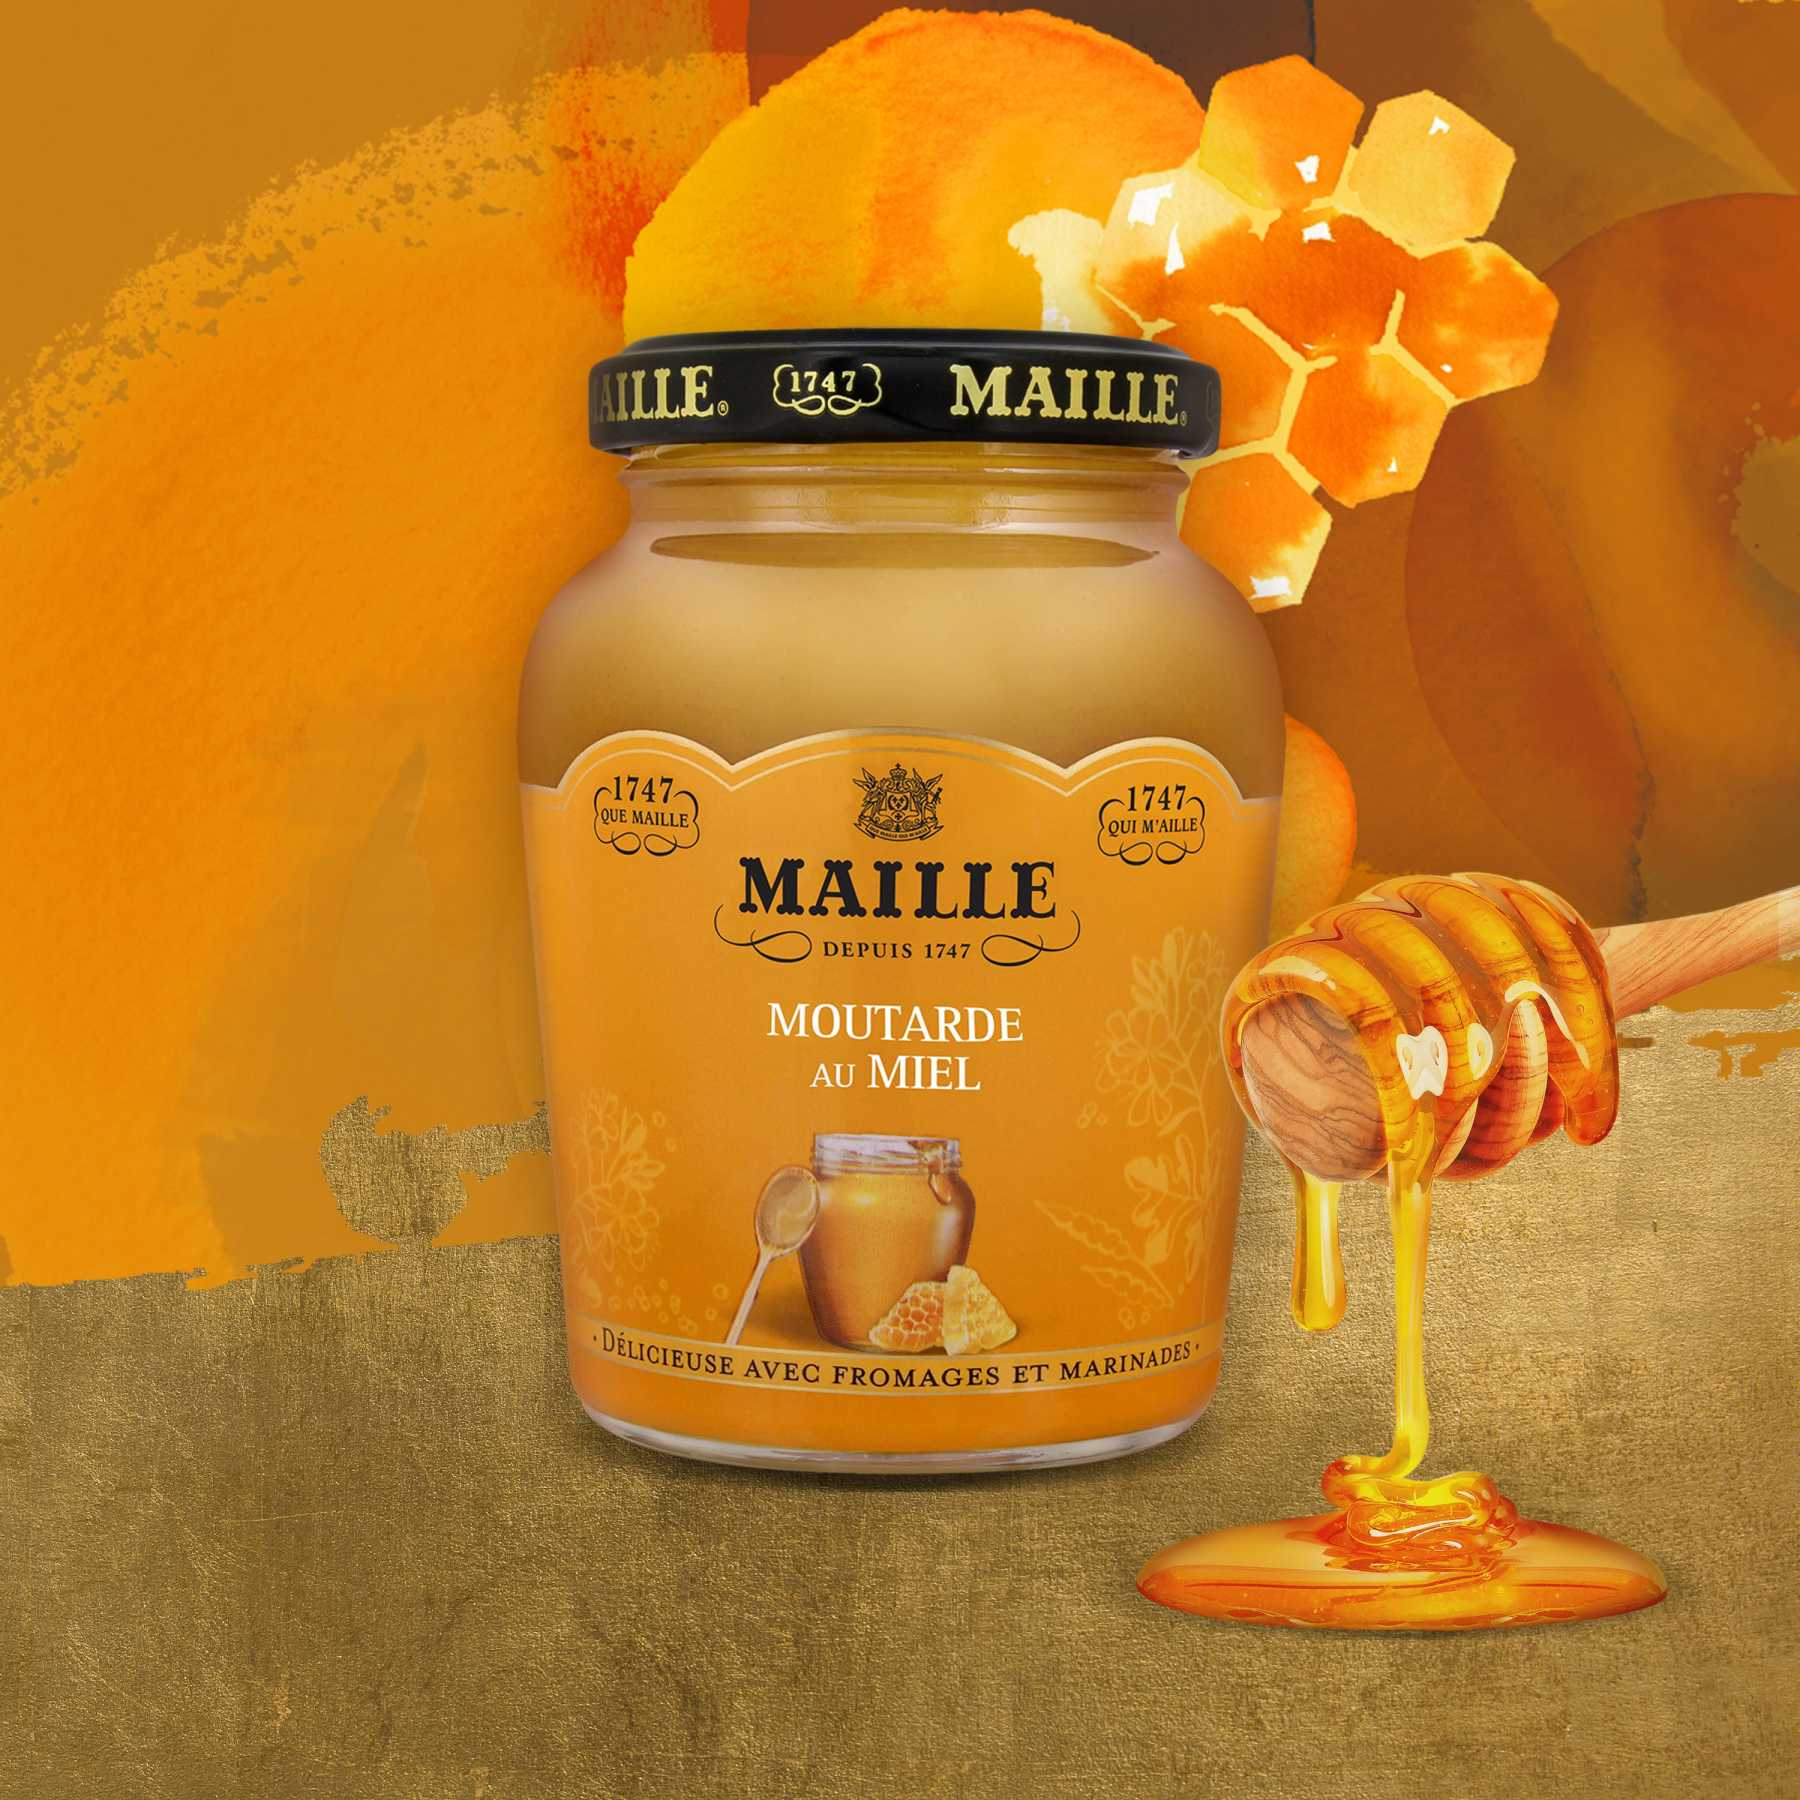 Maille - Moutarde Au Miel Bocal 230 g, new visual